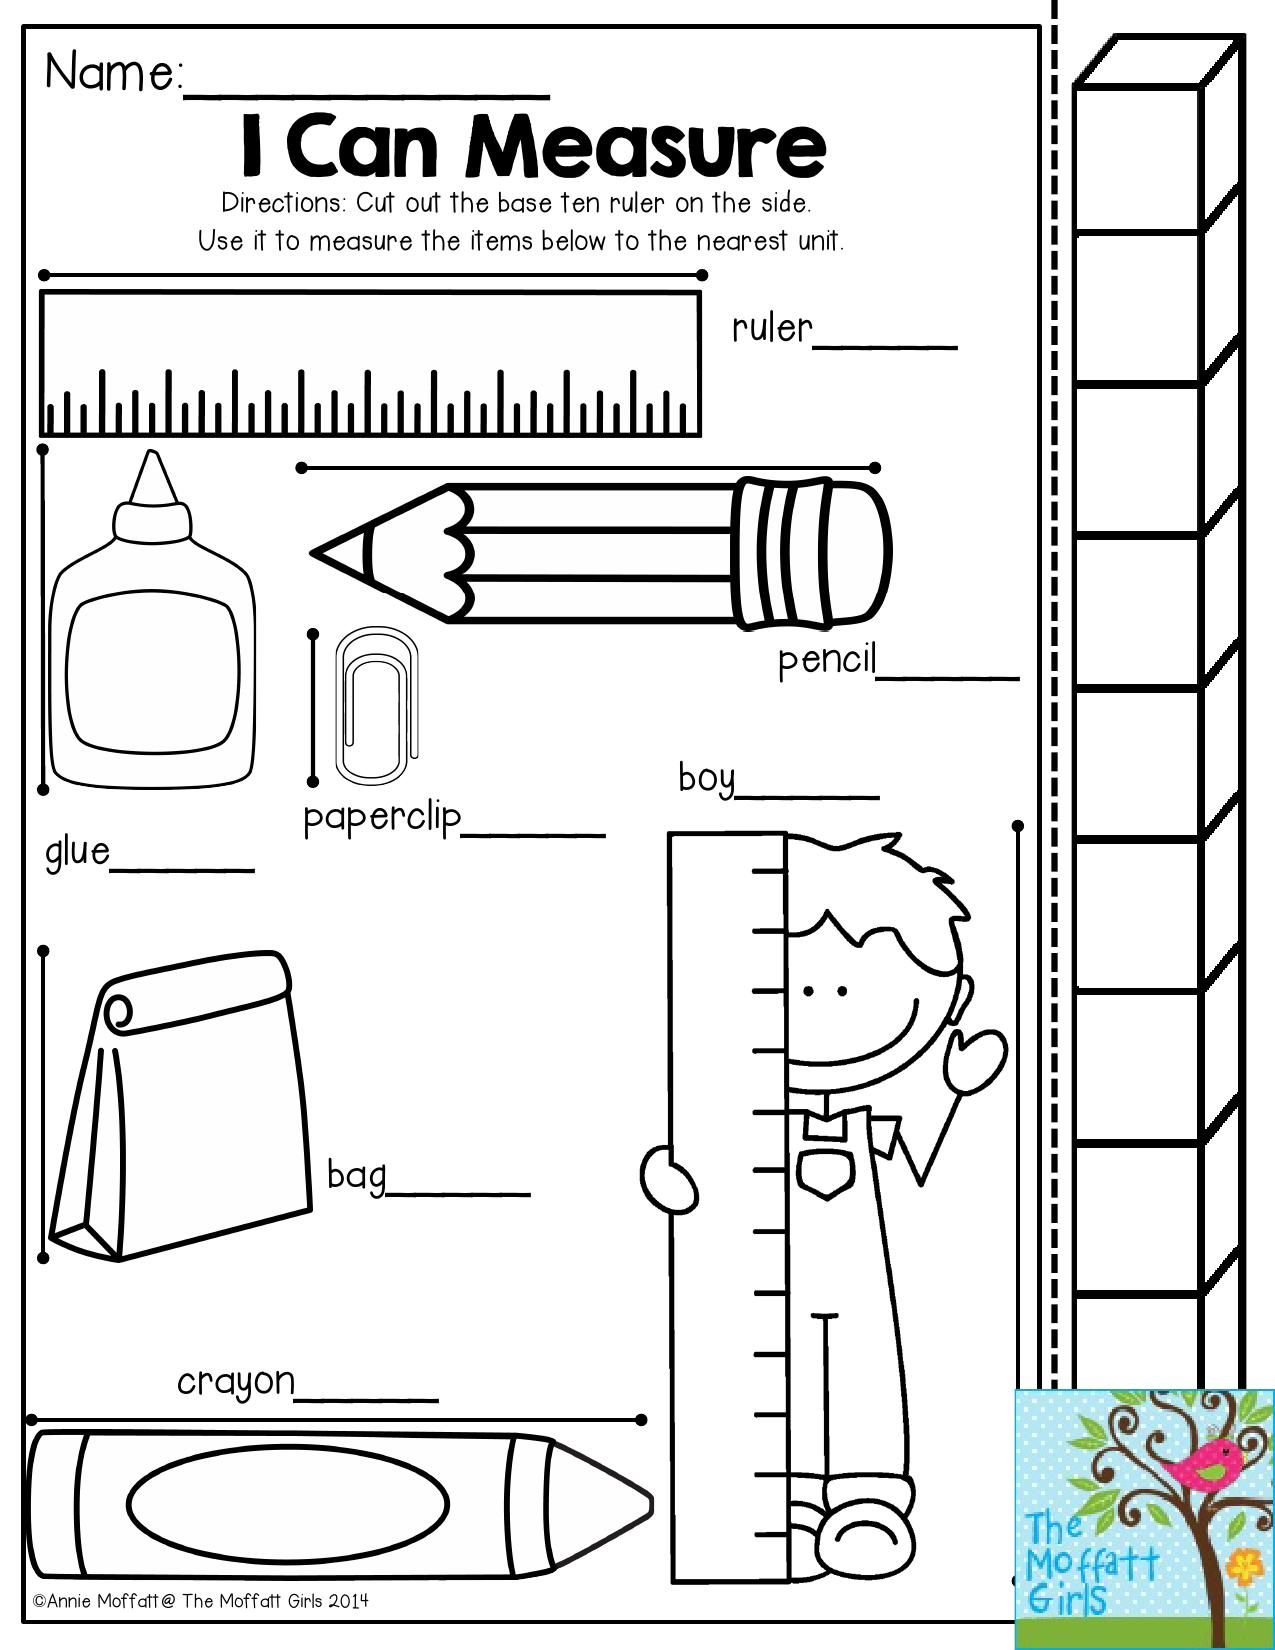 Worksheet Measurement In Feet